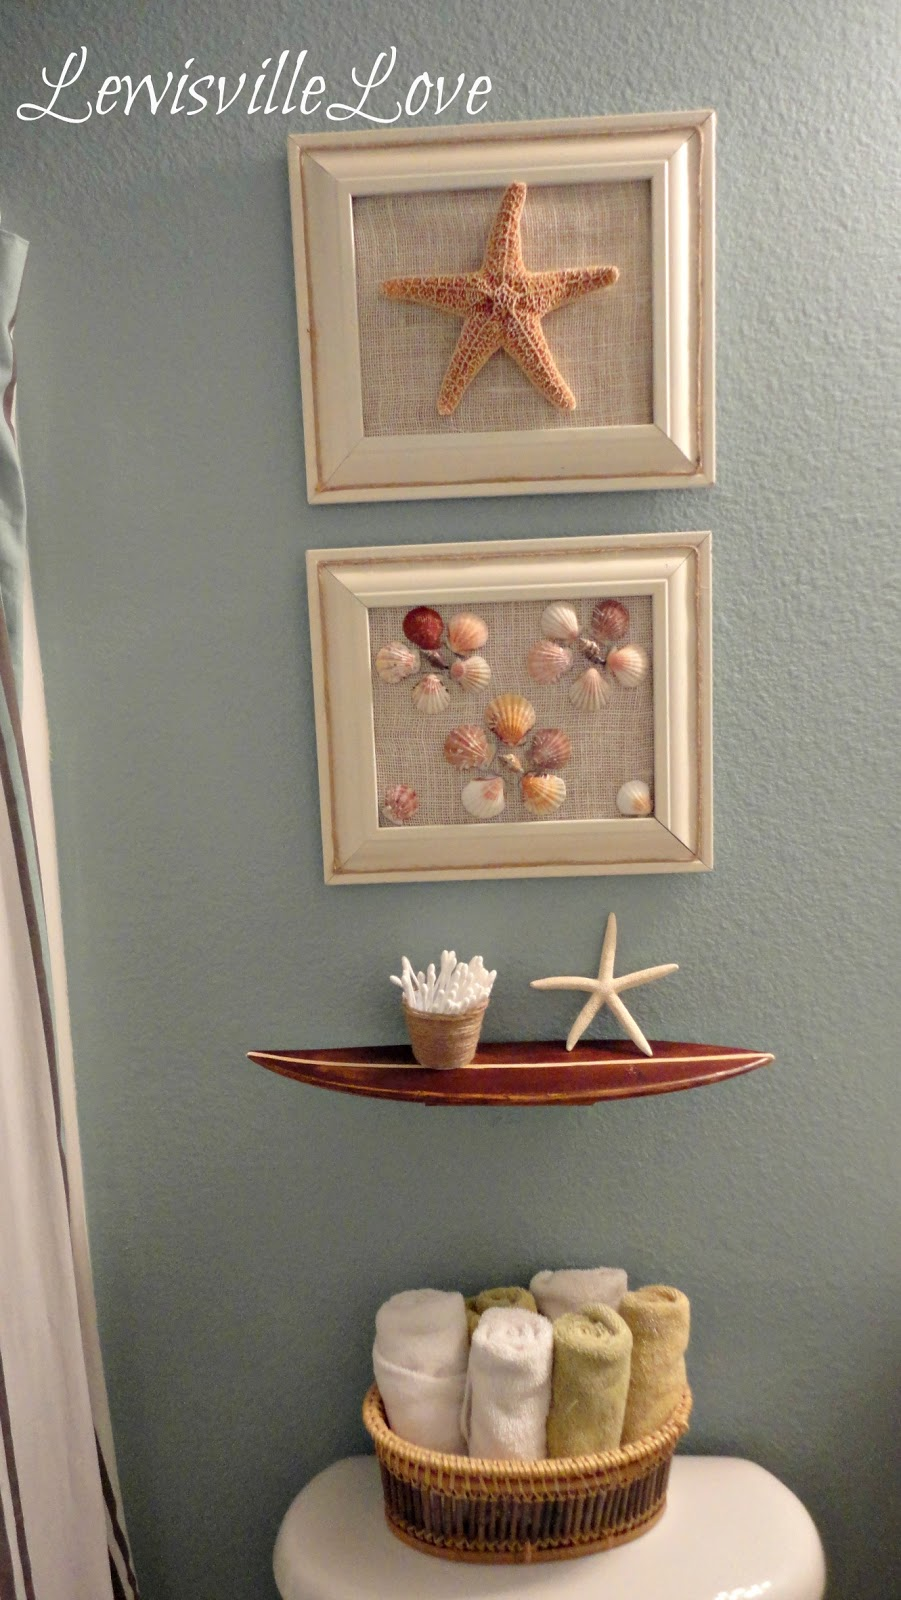 Lewisville love beach theme bathroom reveal for Bathroom decorating themes